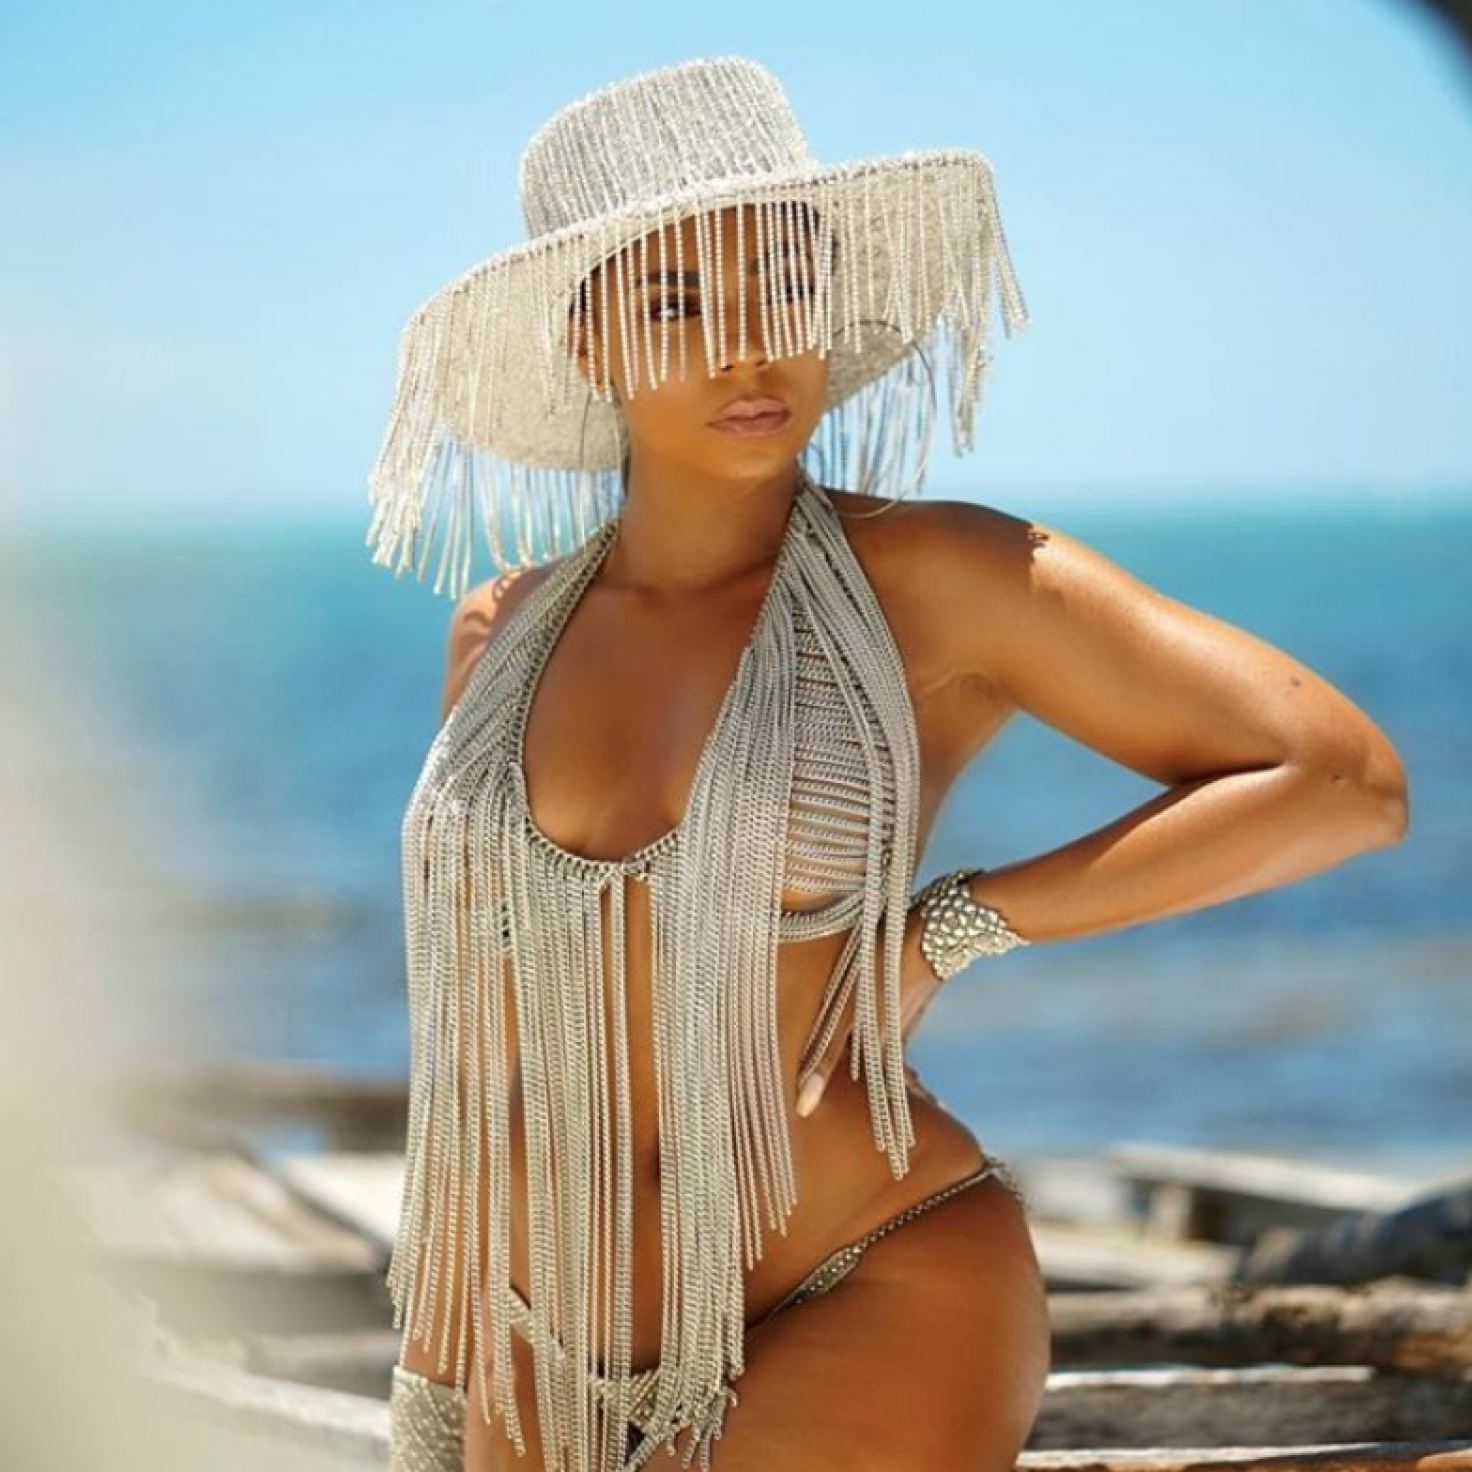 These Photos Of Ashanti On Vacation Will Motivate You To Stick To Your Fitness Goals